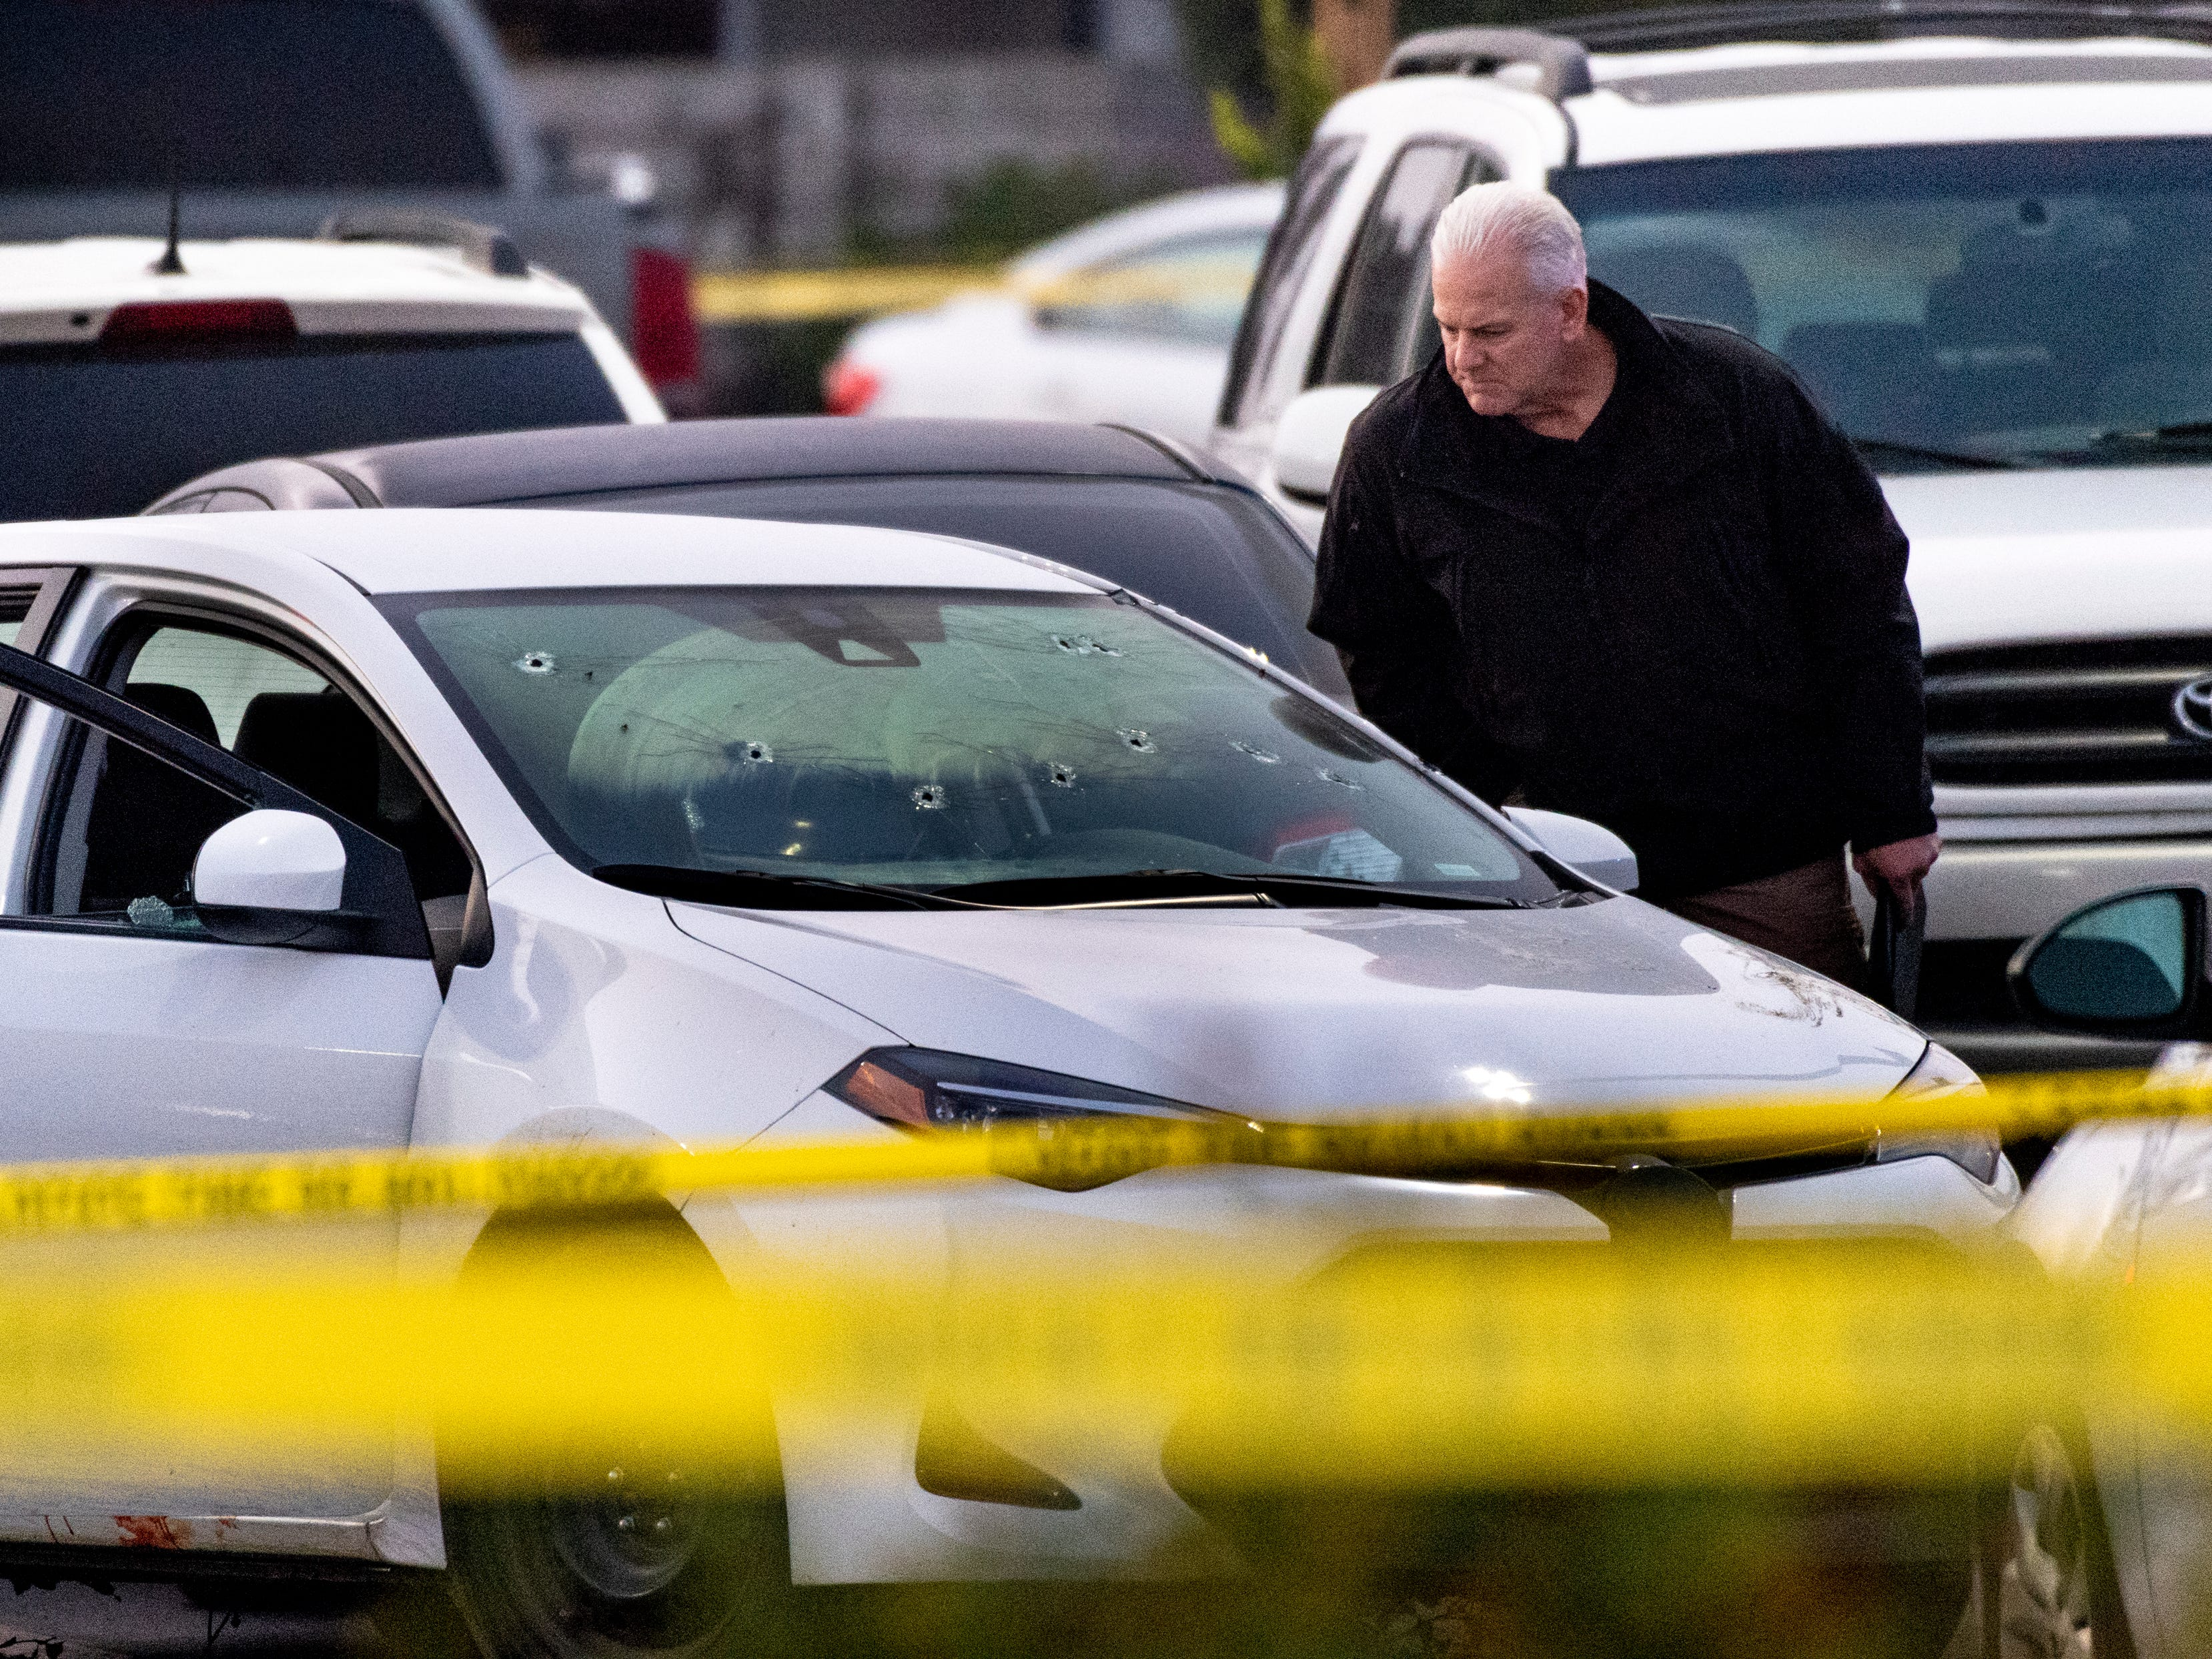 Visalia Police Lt. Ron Epp looks at the bullet-riddled car used by suspects during an officer-involved shooting in the north parking lot of Visalia Mall on Thursday, January 10, 2019.